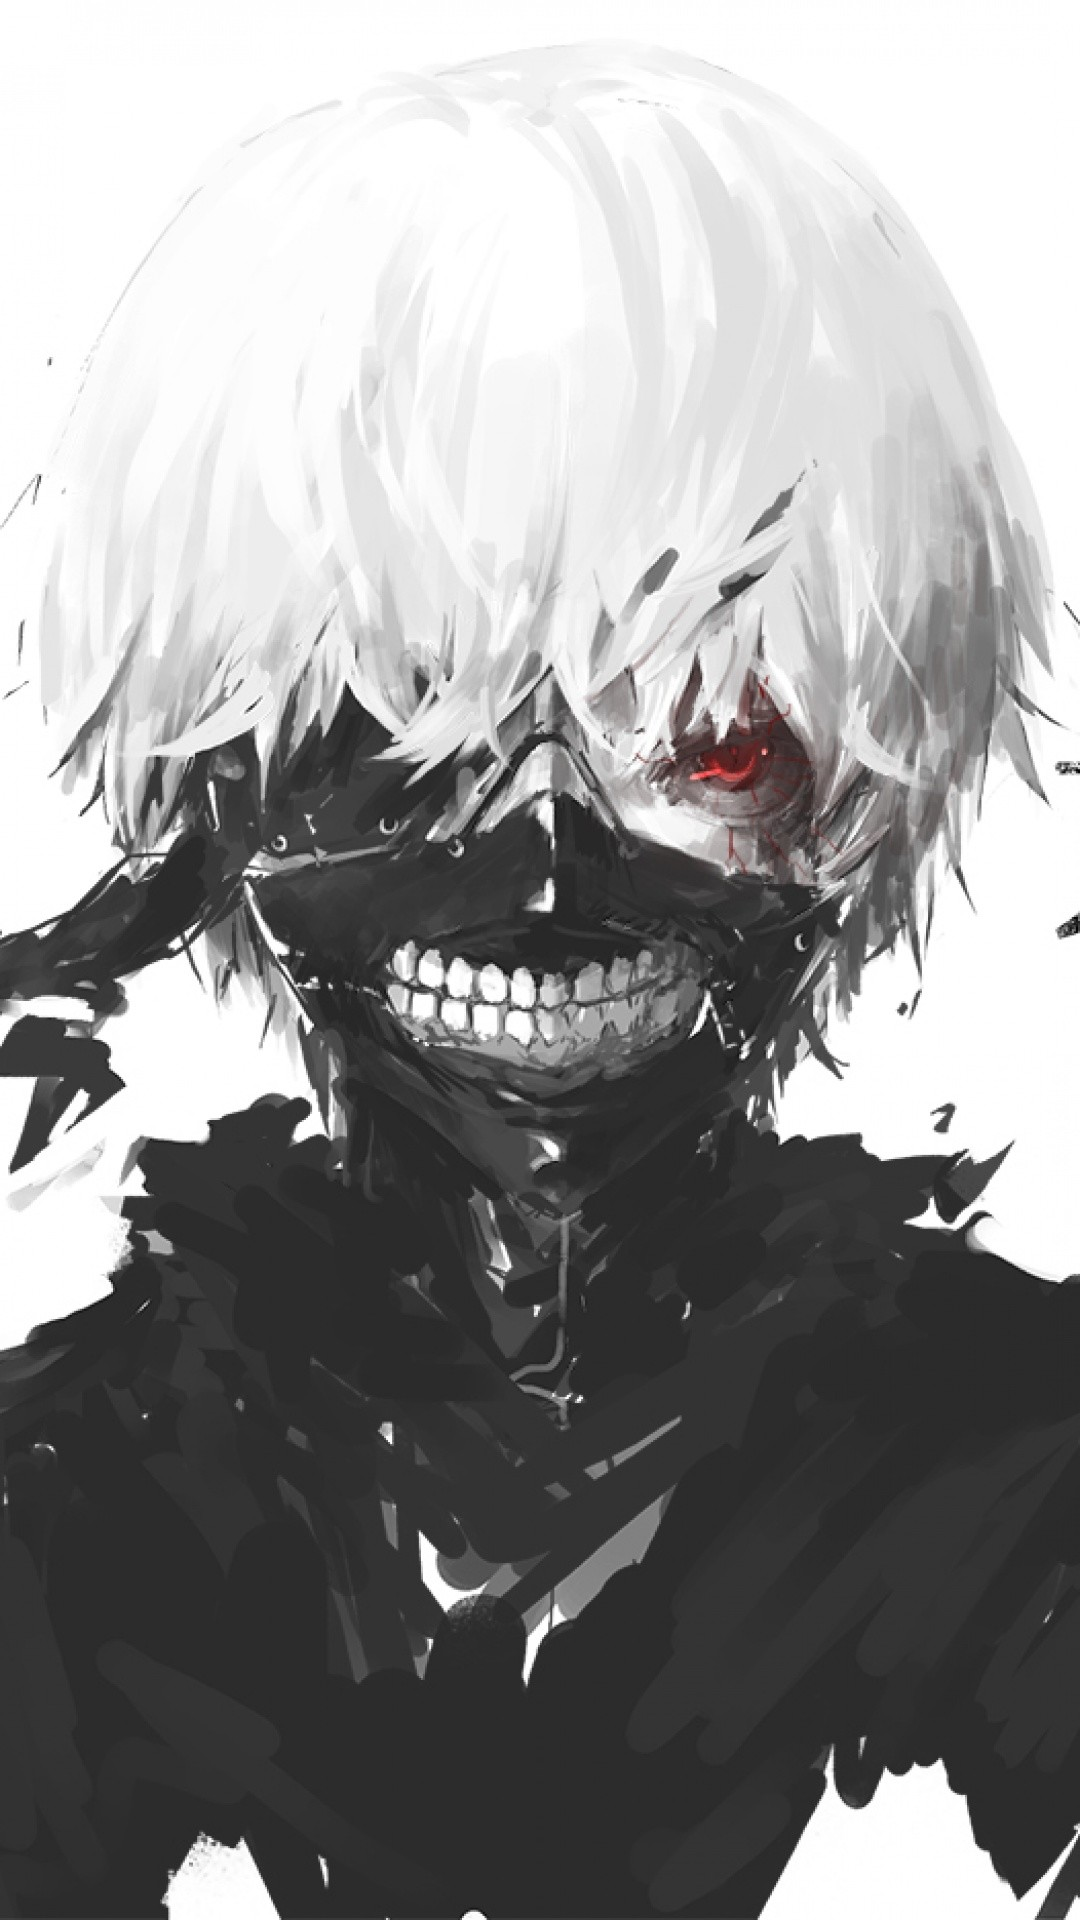 Vertical portrait hd resolution in 2160x3840, 1080x1920. Tokyo Ghoul iPhone Wallpaper (76+ images)